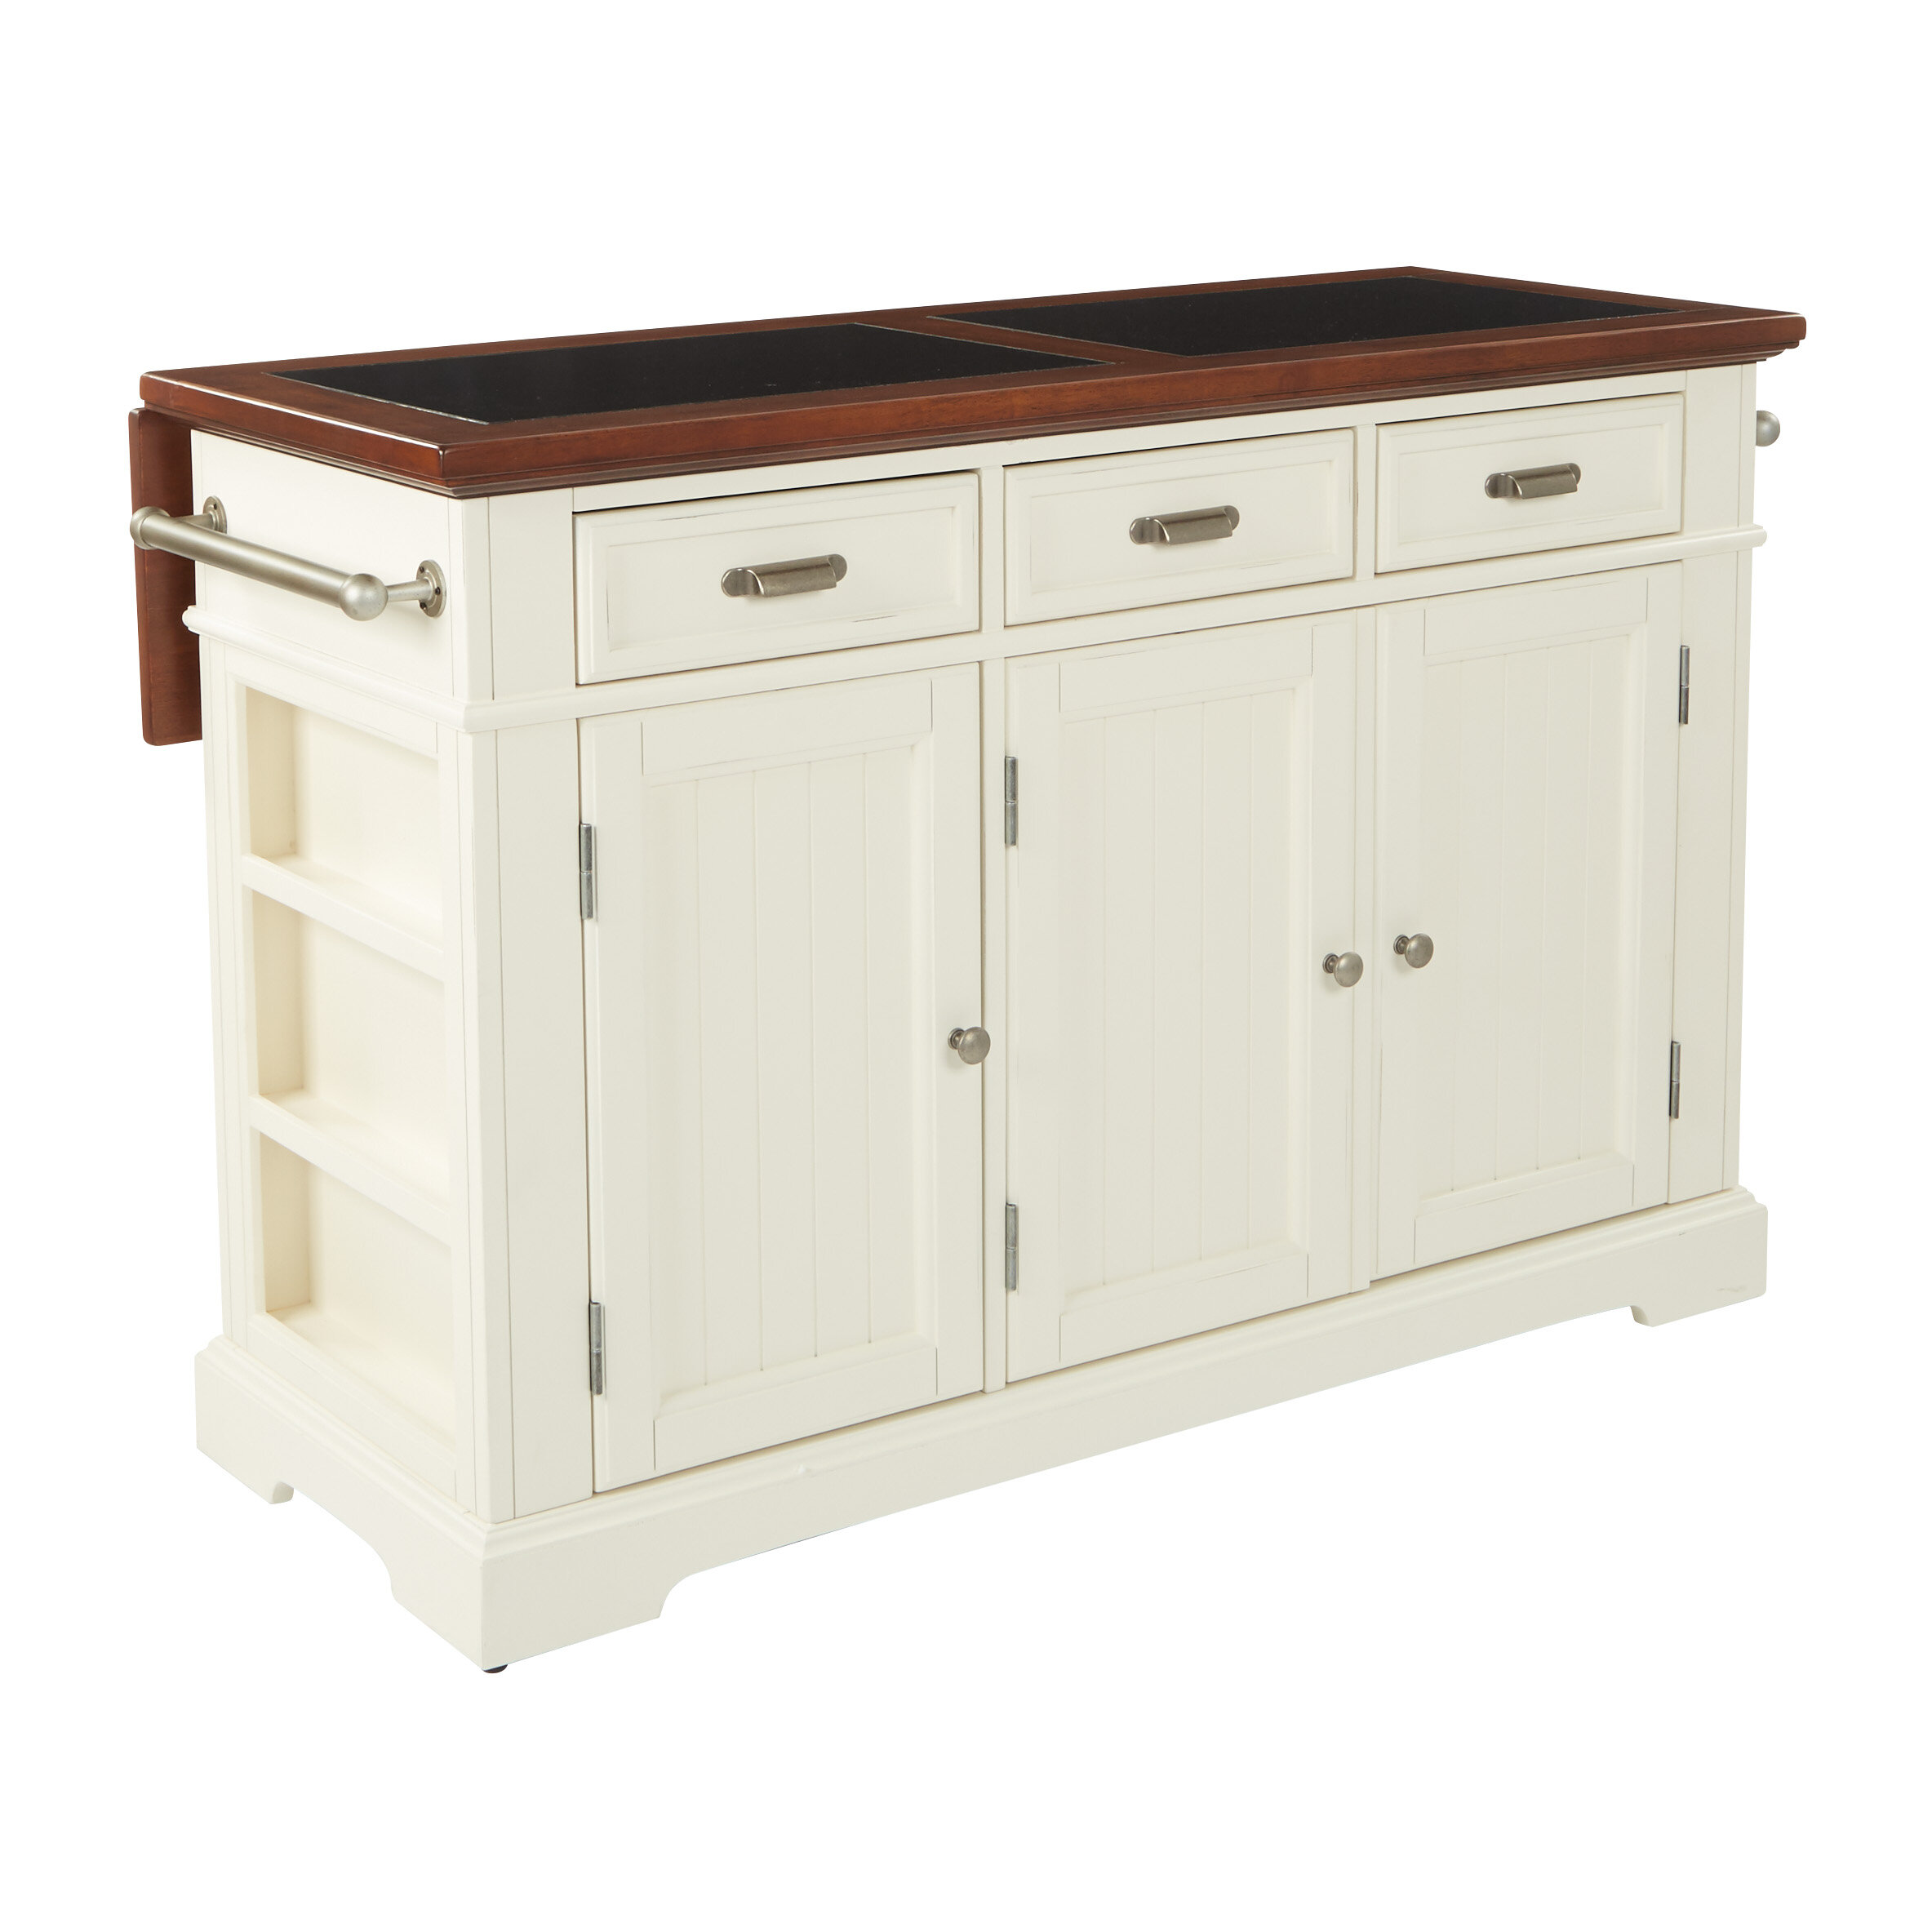 Large Kitchen Islands With Granite Top August Grove Cintron Large Kitchen Island with Granite Top u0026 Reviews |  Wayfair